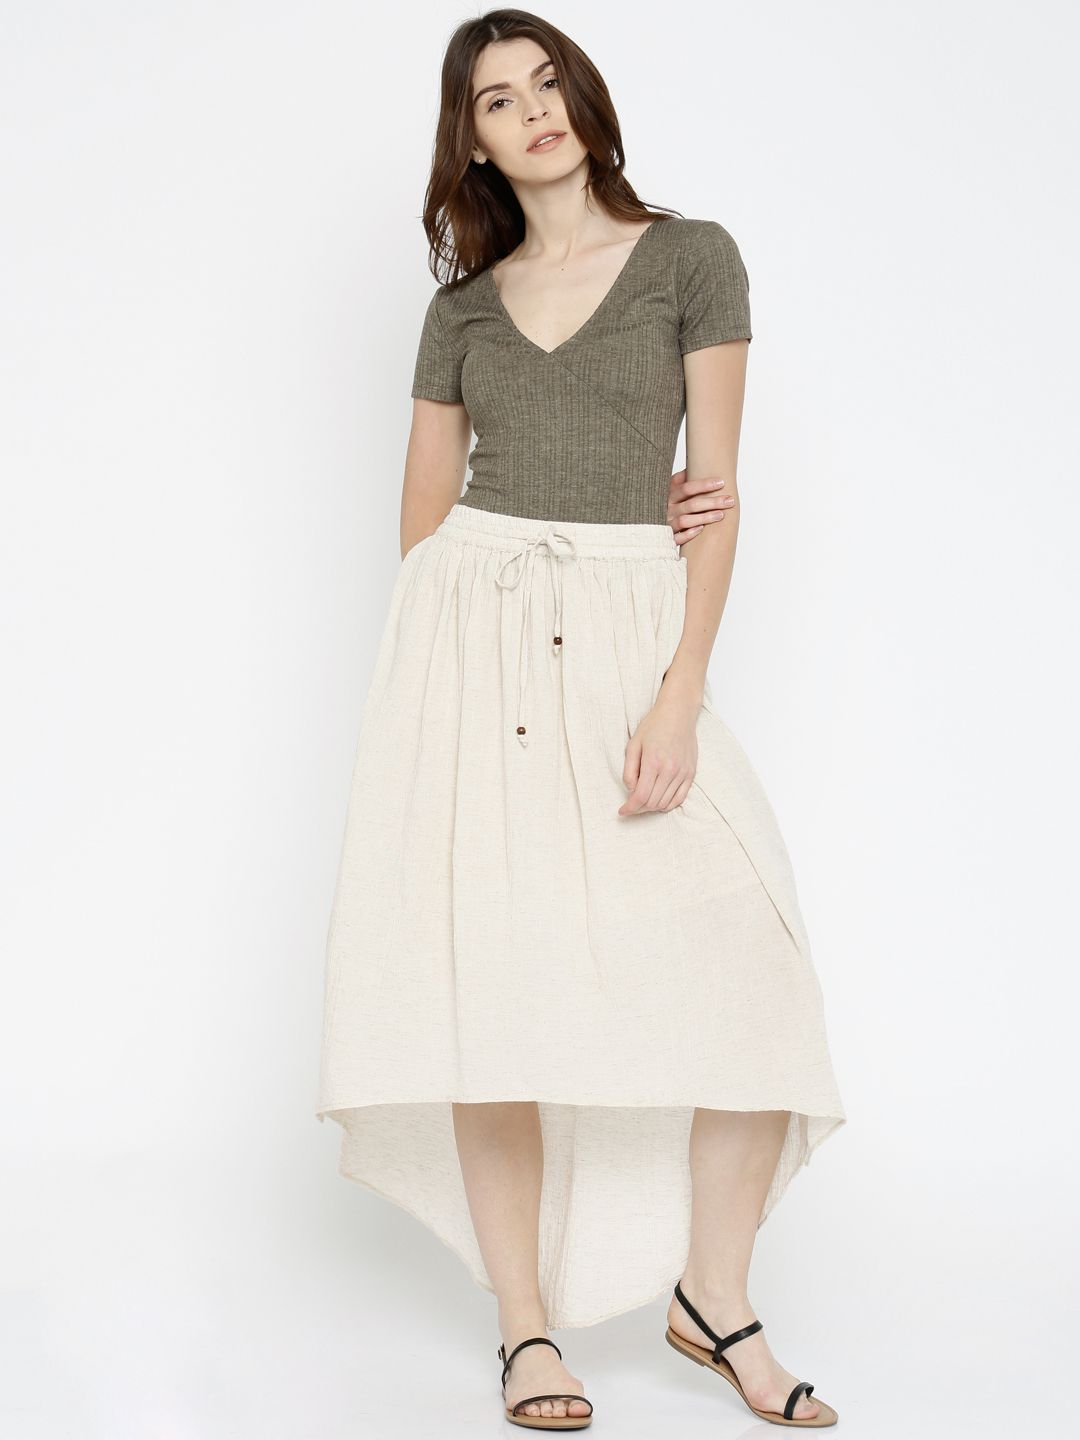 93aea8d6c Global Desi Off-White Speckled High-low Skirt #Skirt #OffWhite #Solid # highLow #CalfLenght